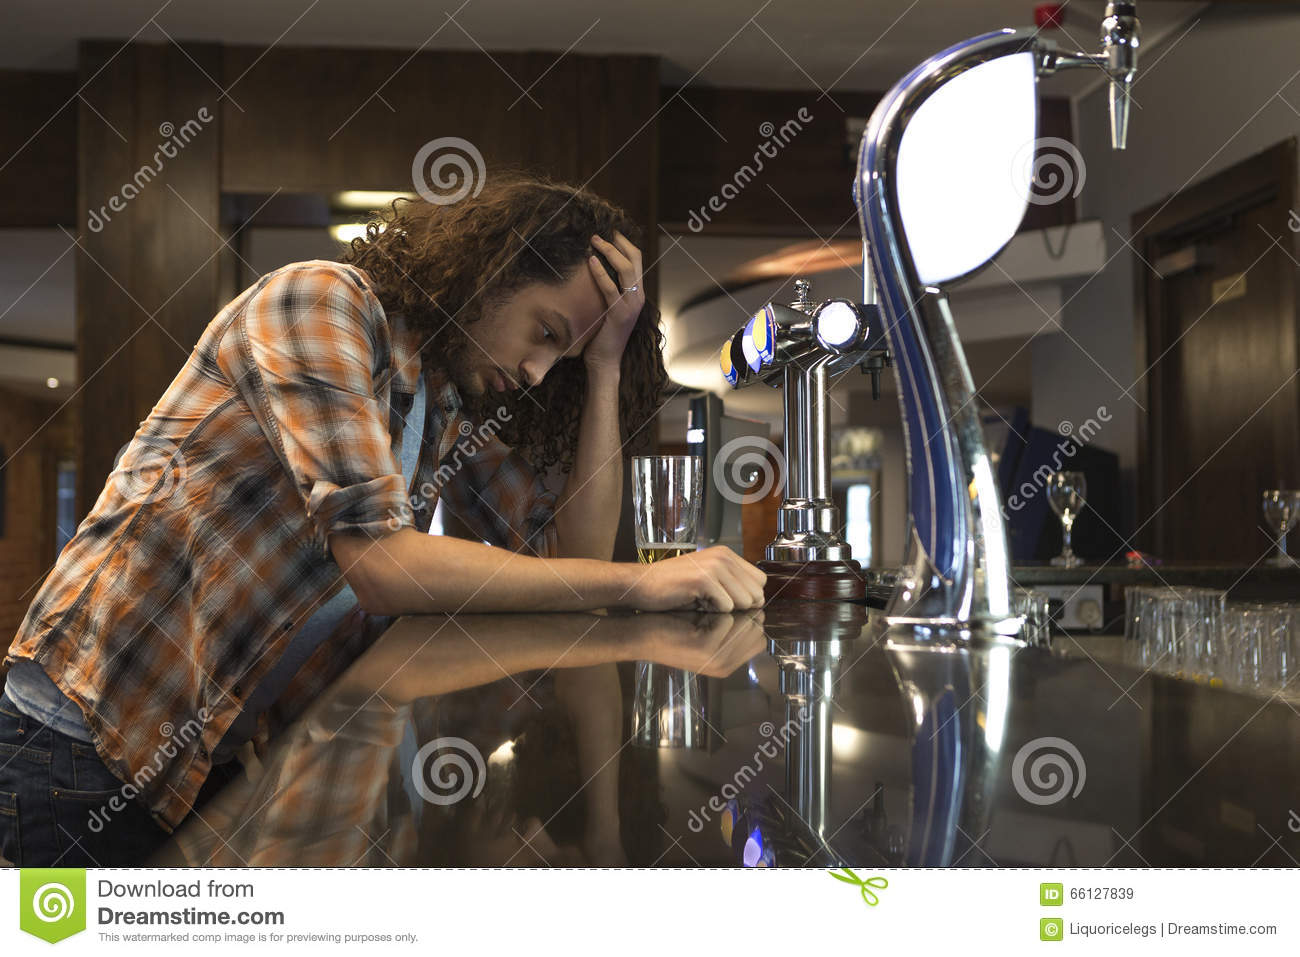 Image result for man drowning his sorrows in beer